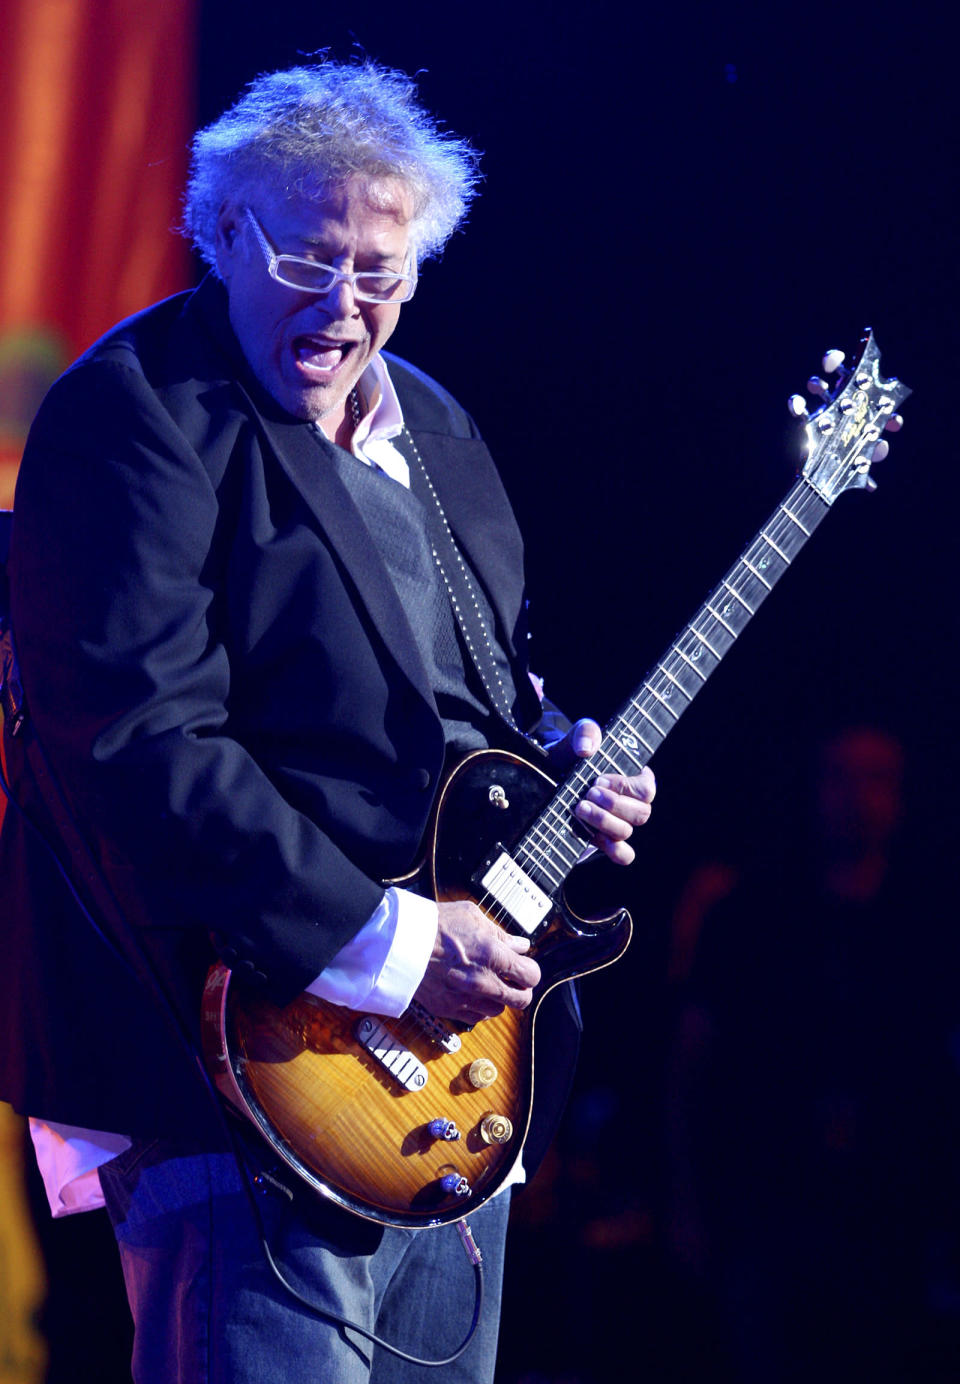 """FILE - In this Aug. 15, 2009, file photo, Leslie West of Mountain performs during the Heroes of Woodstock concert at Bethel Woods Center for the Arts in Bethel, N.Y., marking the 40th anniversary of the original 1969 Woodstock concert. West, an iconic guitarist-vocalist who was behind several 70s rock anthems including """"Mississippi Queen"""" with the popular band Mountain, died Wednesday, Dec. 23, 2020, in Palm Coast, Fla. He was 75. (AP Photo/Craig Ruttle, File)"""